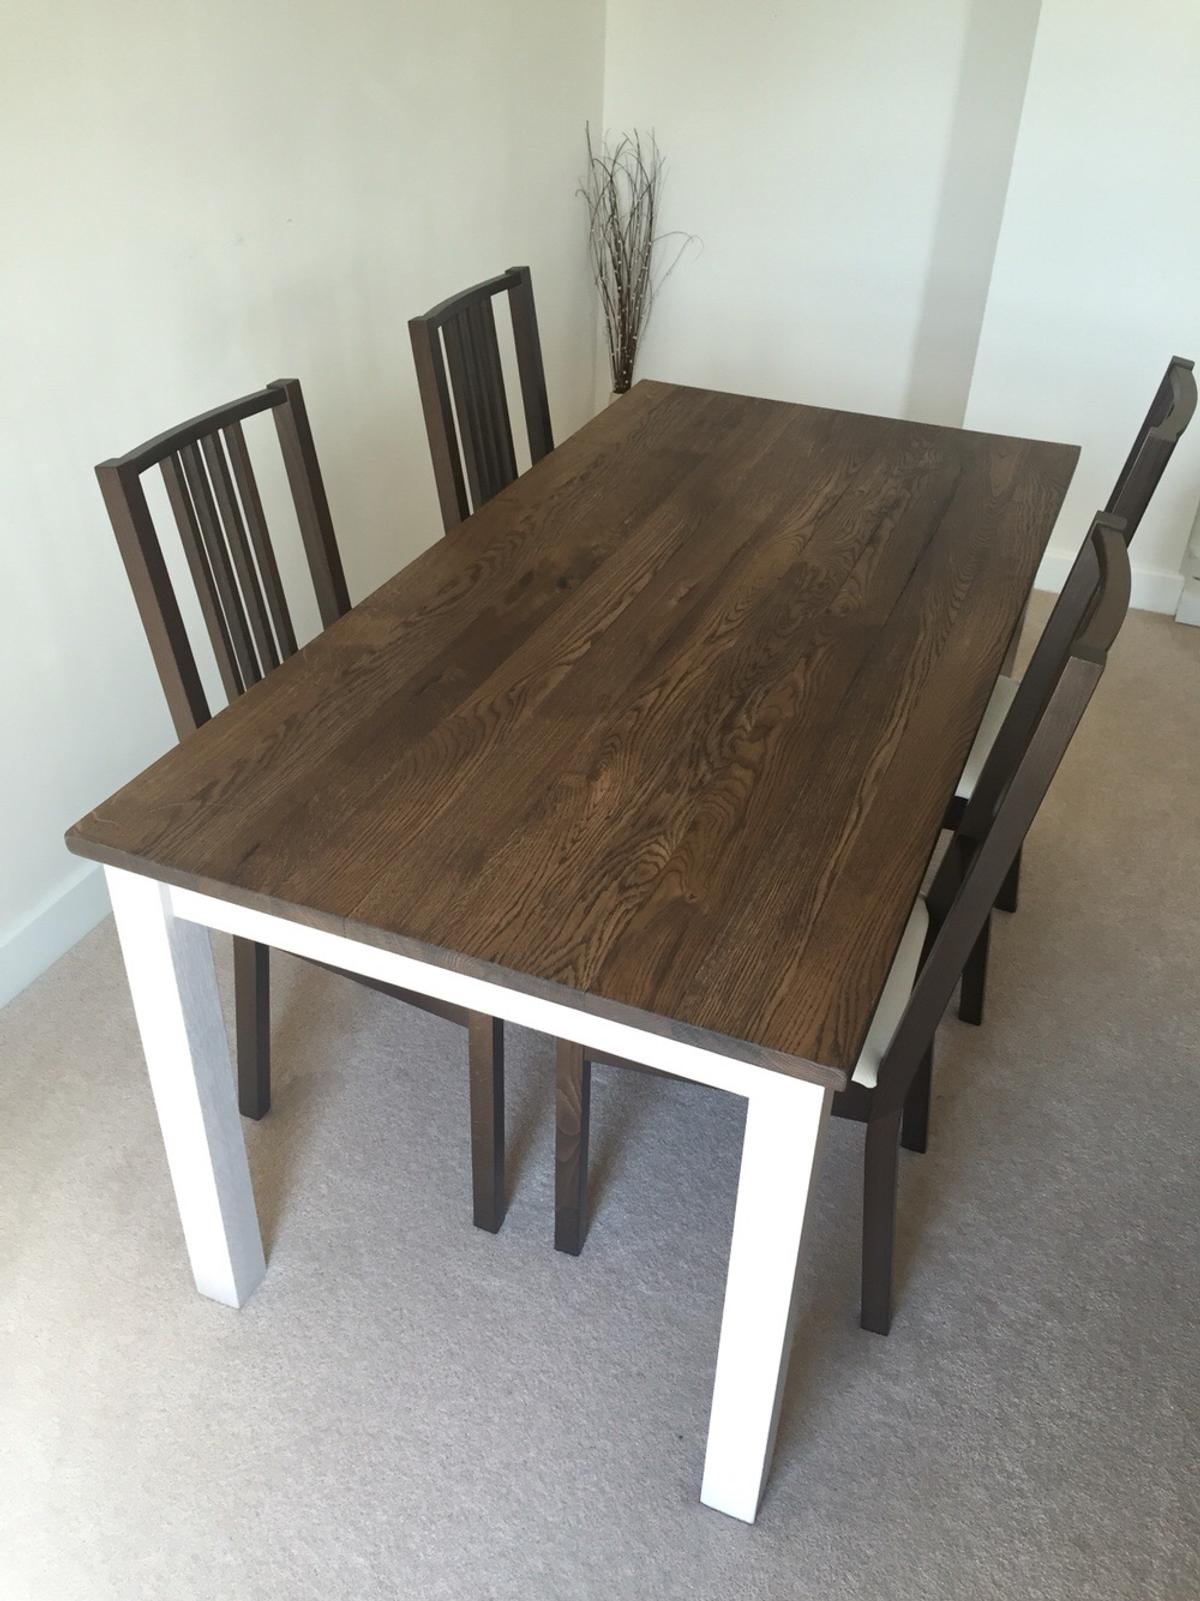 Pleasant Ikea Kejsarkrona Dining Set Oak White In E16 London For Ocoug Best Dining Table And Chair Ideas Images Ocougorg